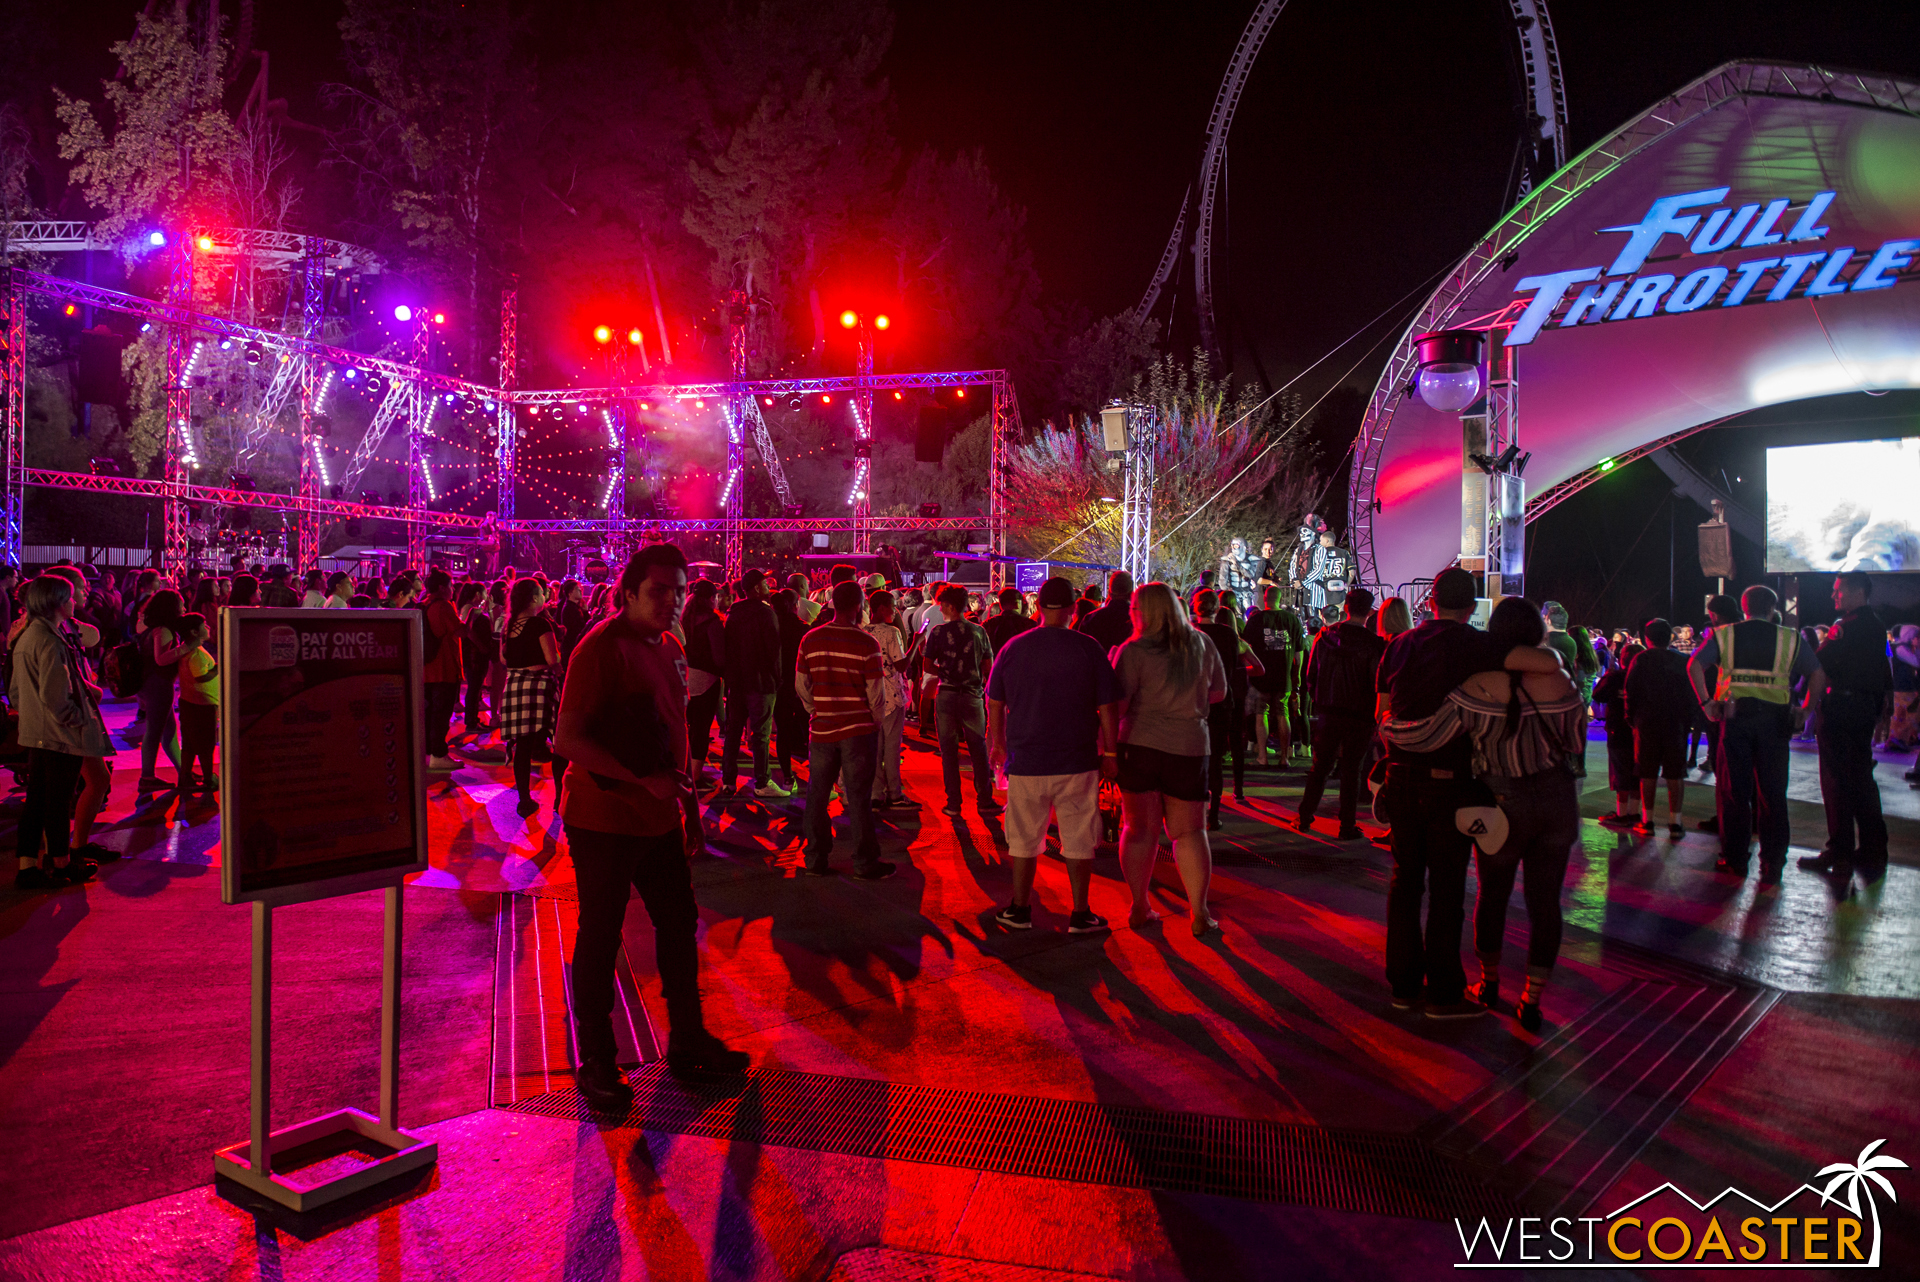 Those looking for some high energy music and dance should head here at night.